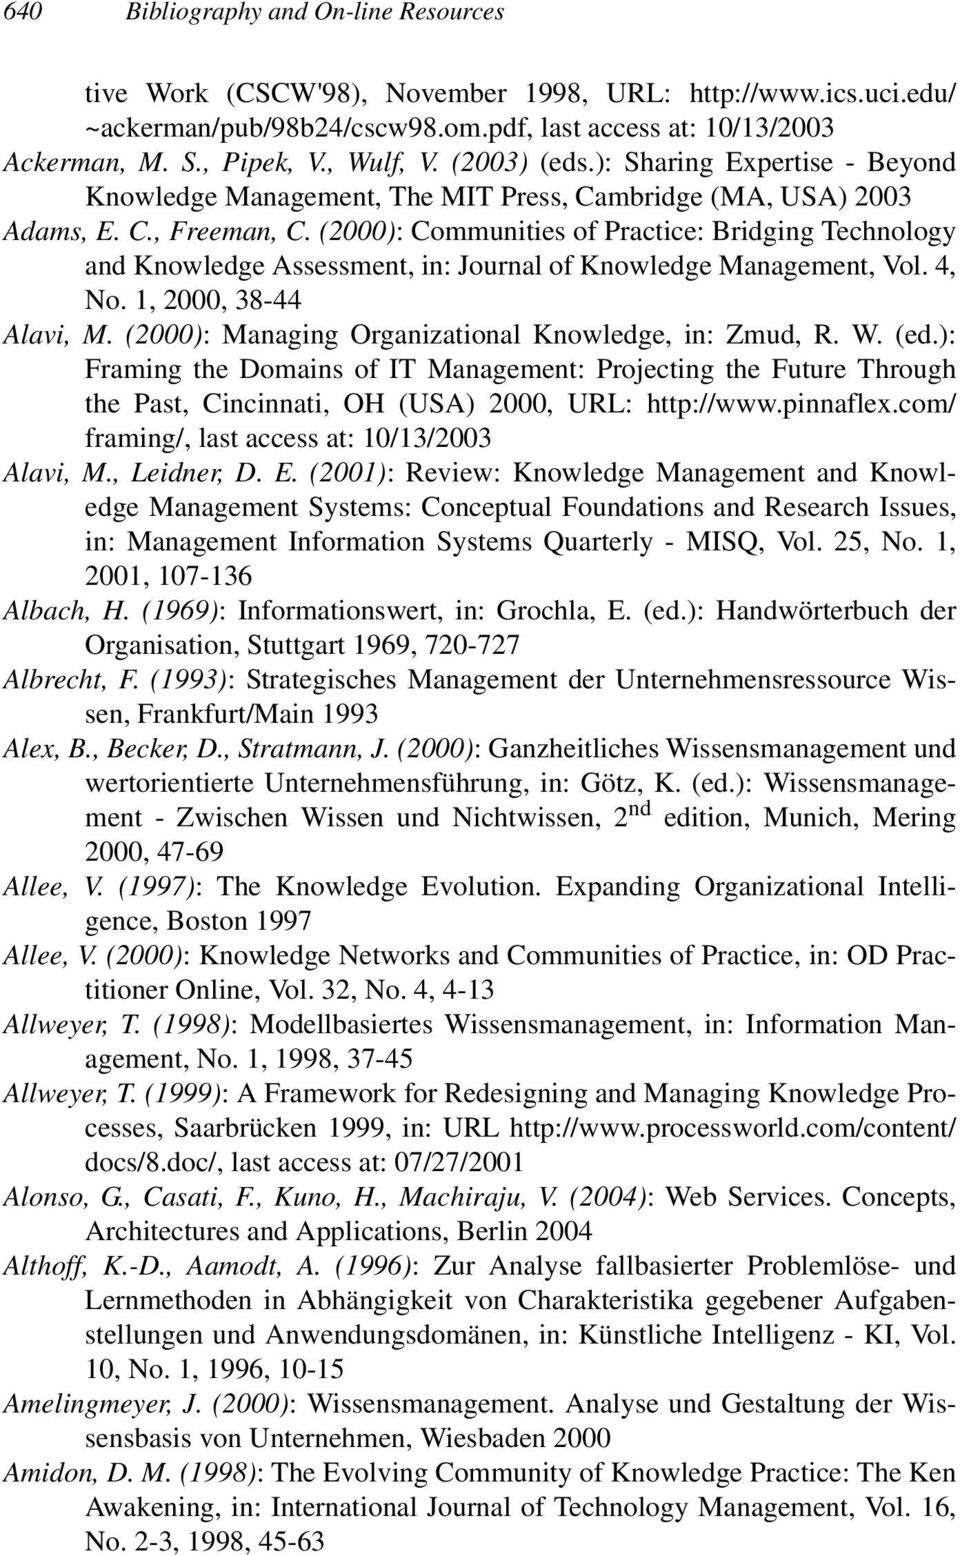 (2000): Communities of Practice: Bridging Technology and Knowledge Assessment, in: Journal of Knowledge Management, Vol. 4, No. 1, 2000, 38-44 Alavi, M.